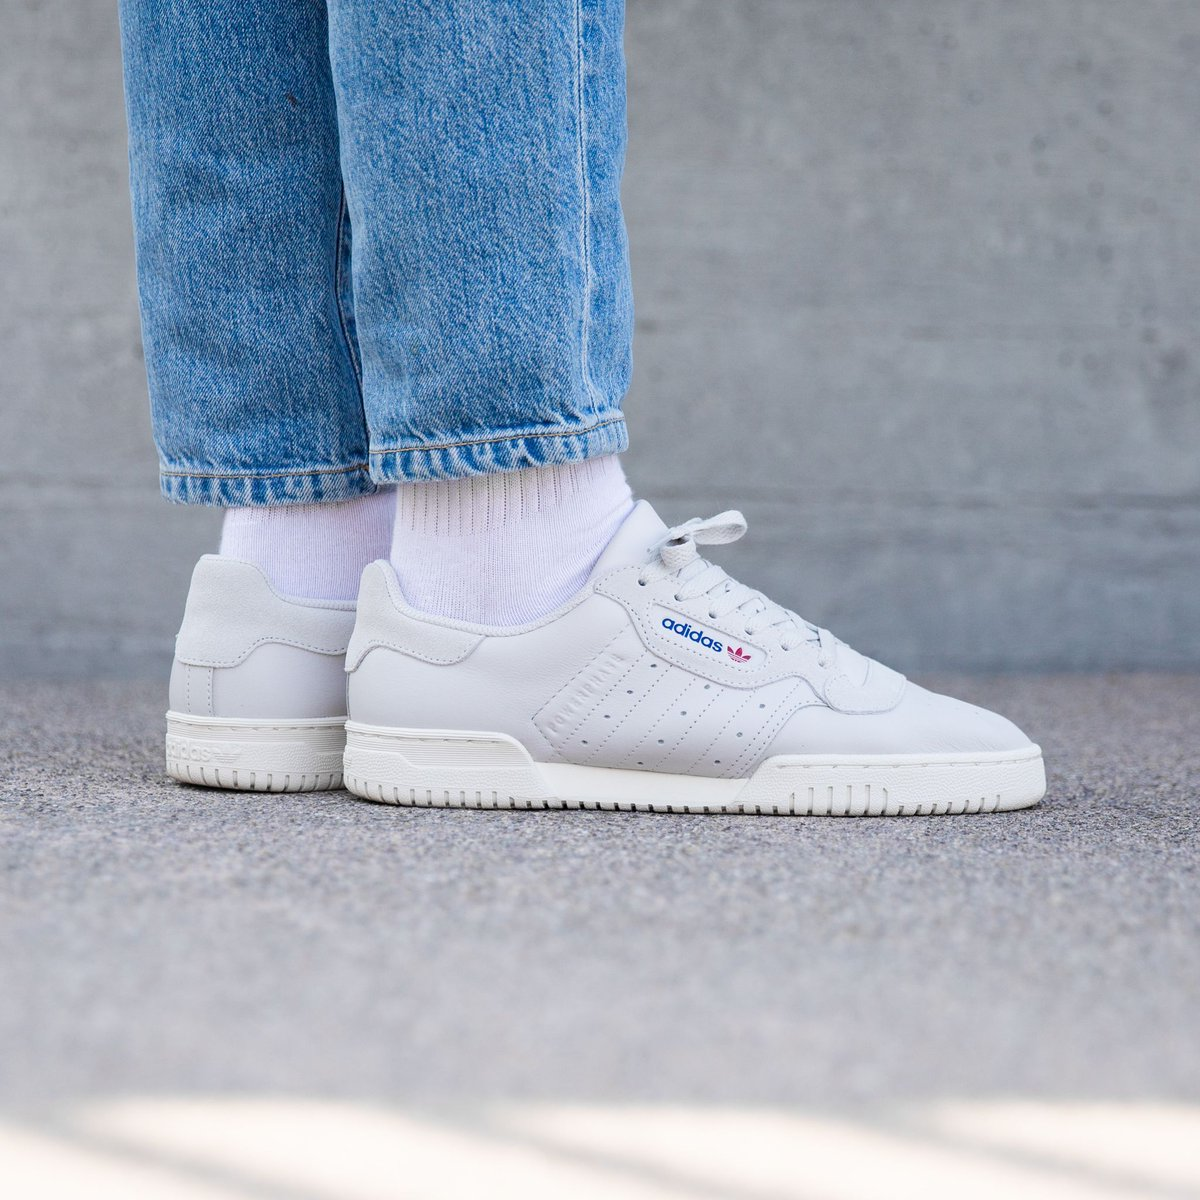 7d929a792406c powerphase hashtag on Twitter